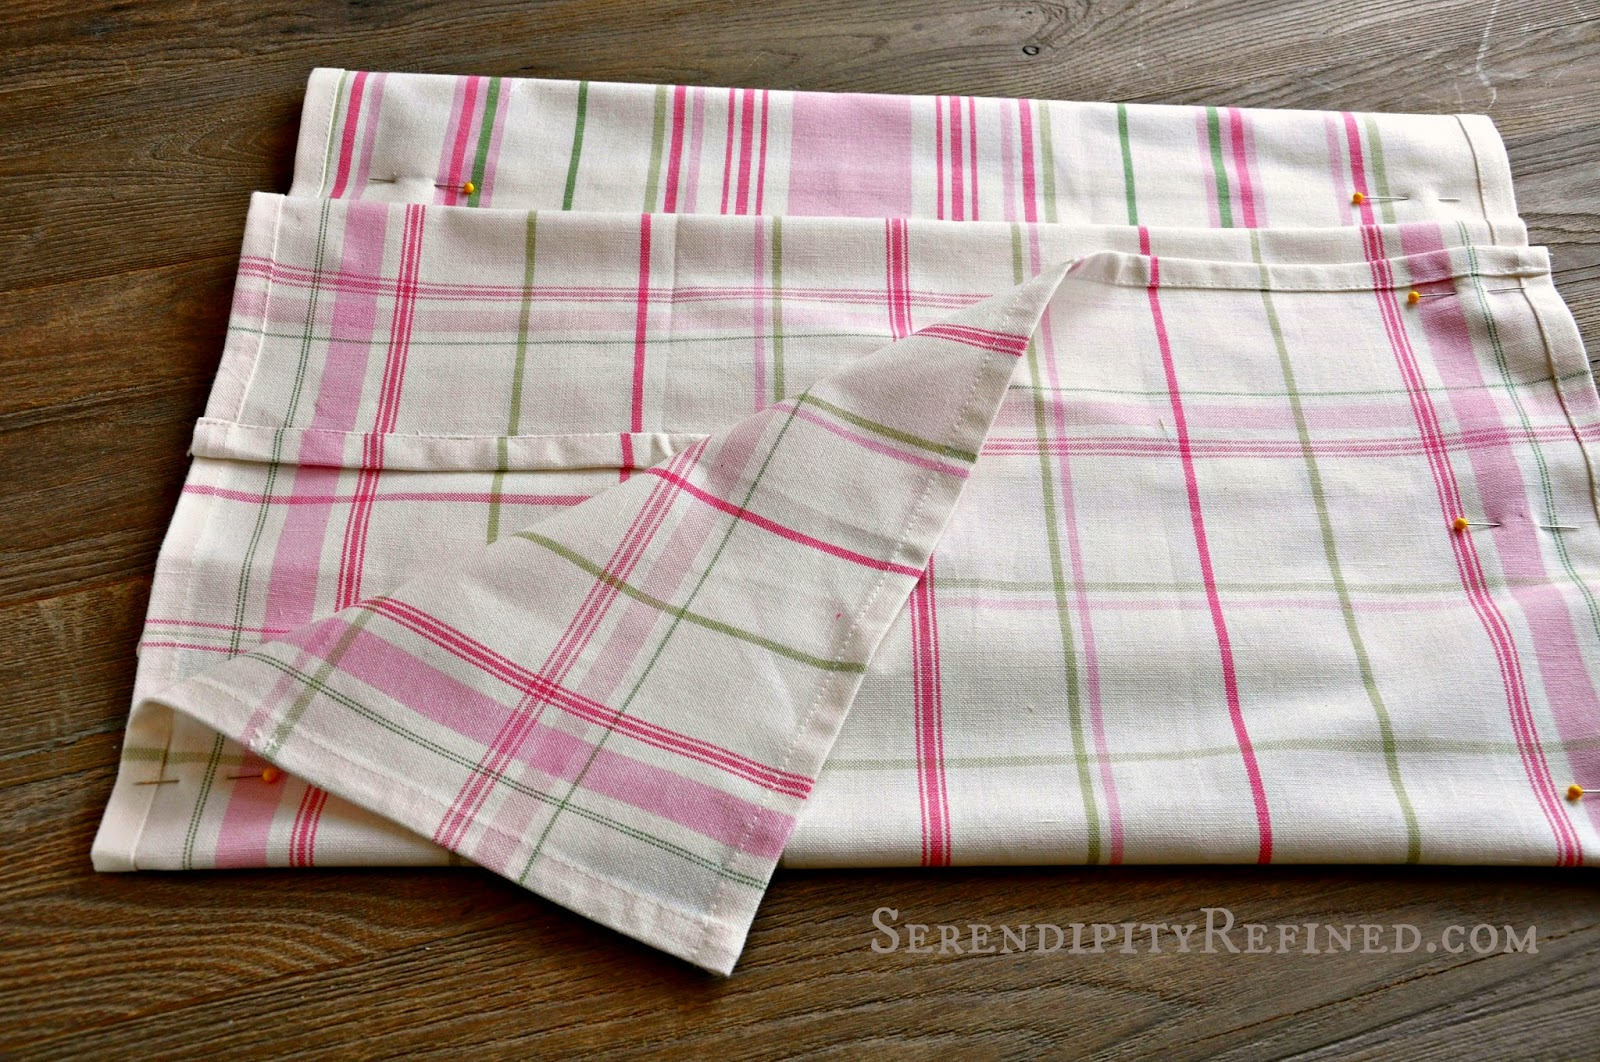 Serendipity Refined Blog: How To Make An Easy DIY Tea Towel